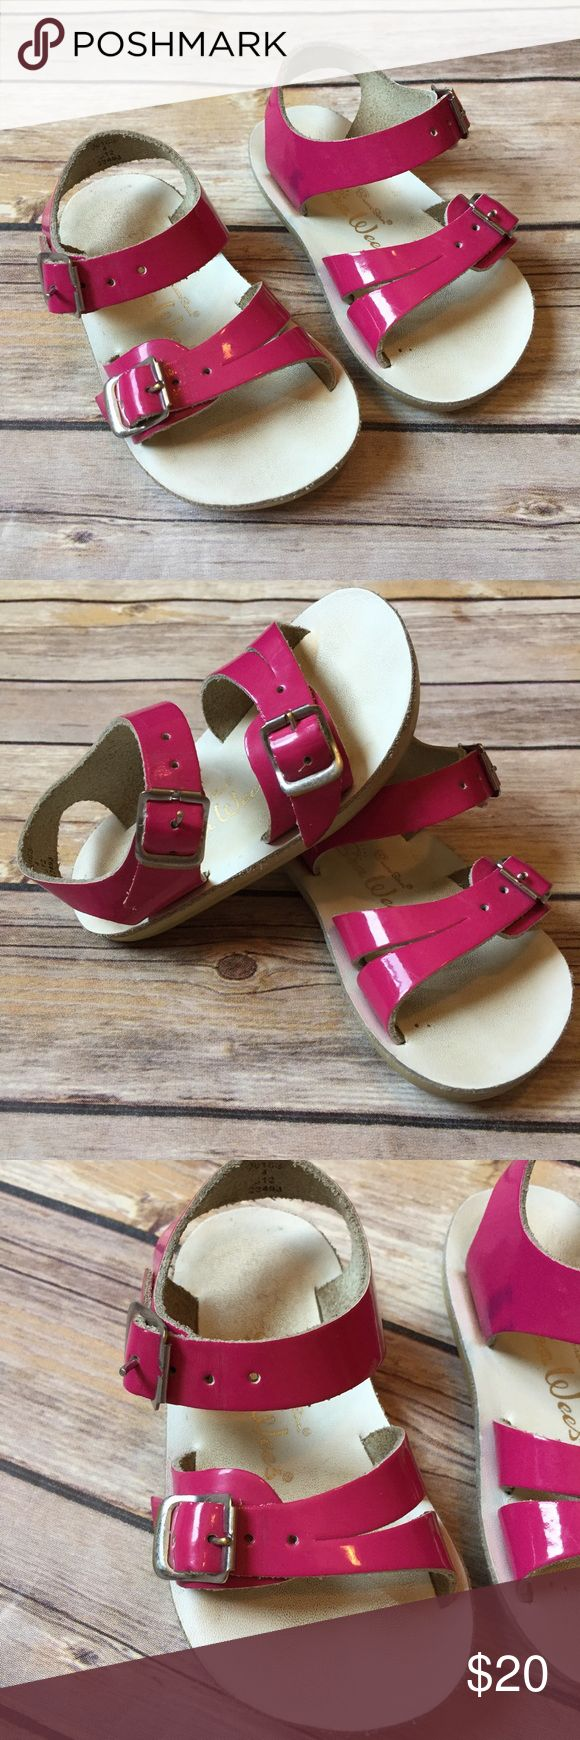 Salt Water Sandals Toddler size 4, pink Salt Water shoes. Very good condition. Only flaw is the marker on the bottoms of the shoes. Foot bed and straps in great shape. Salt Water Sandals by Hoy Shoes Sandals & Flip Flops